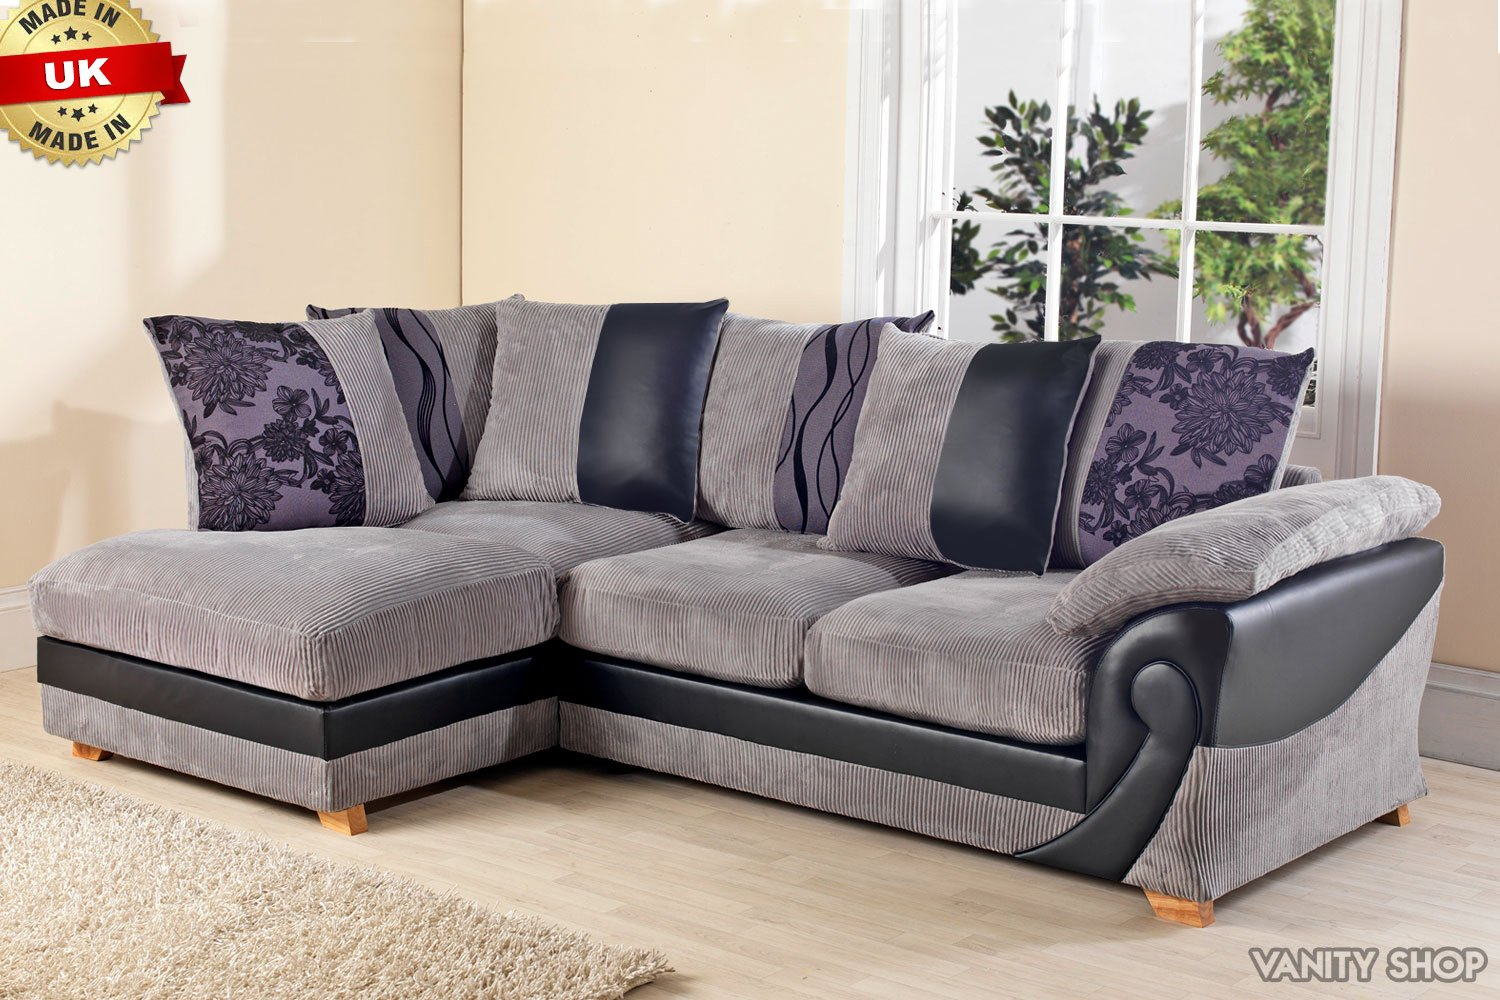 new illusion corner group sofa settee leather fabric right hand left rh amazon co uk